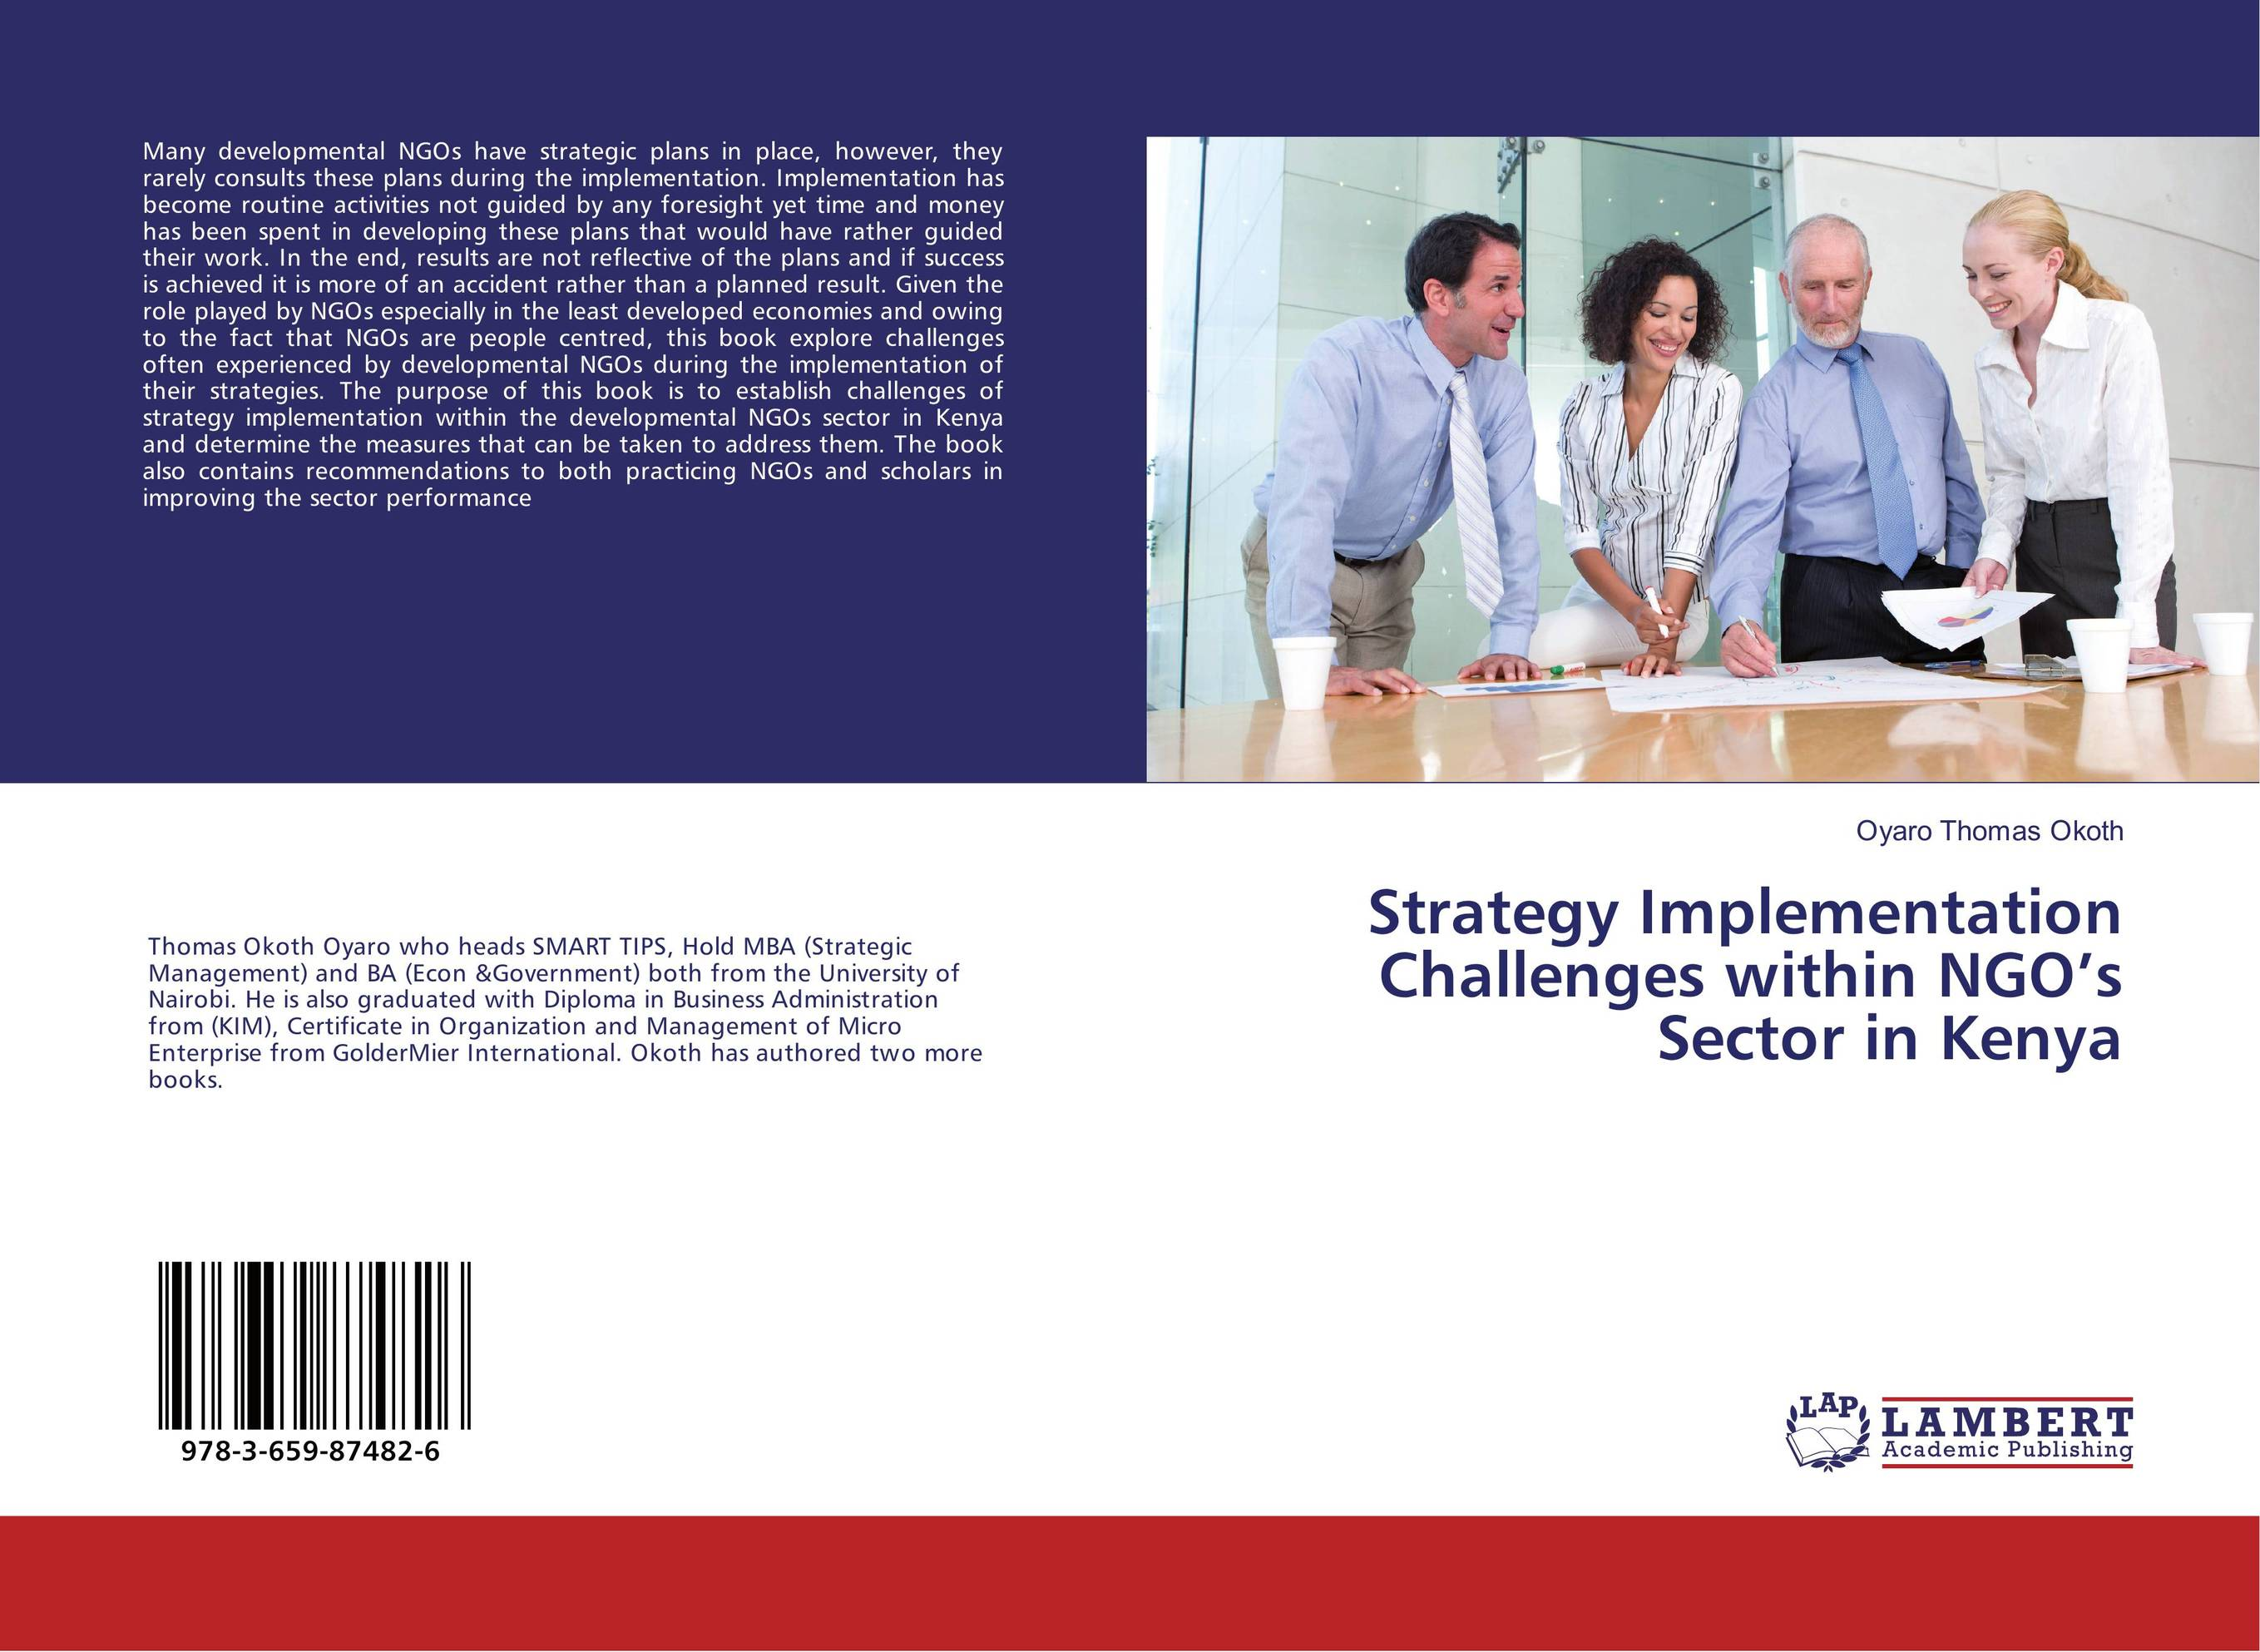 Strategy Implementation Challenges within NGO's Sector in Kenya implementation of strategic plans